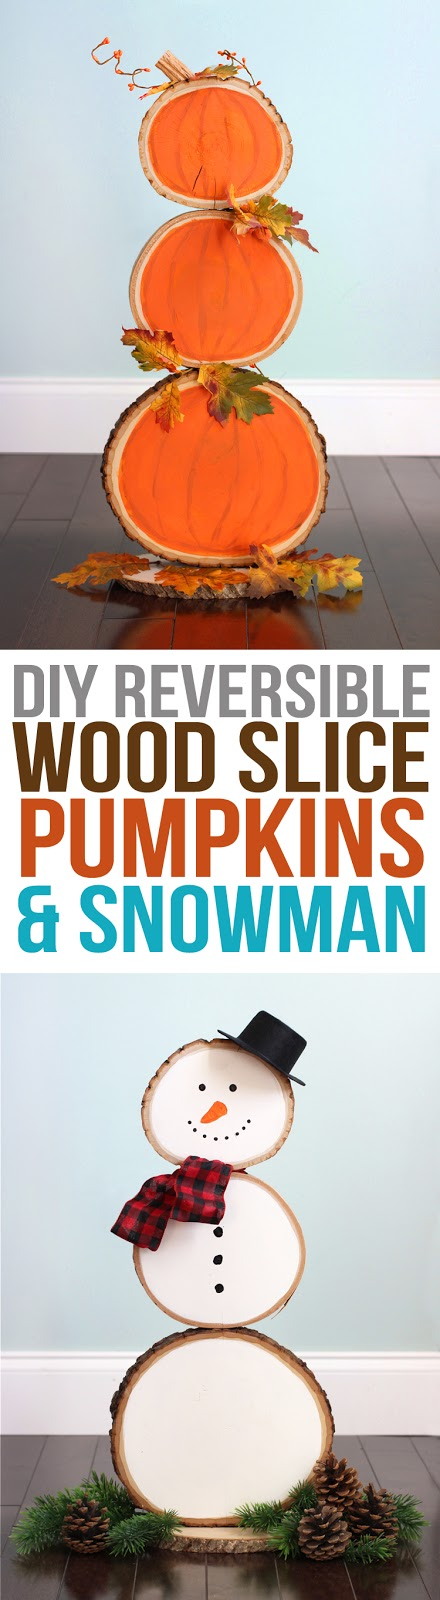 Make a reversible wood slice porch decoration with pumpkins on one side and a snowman on the other. This cute craft can be used for both the fall and winter seasons!